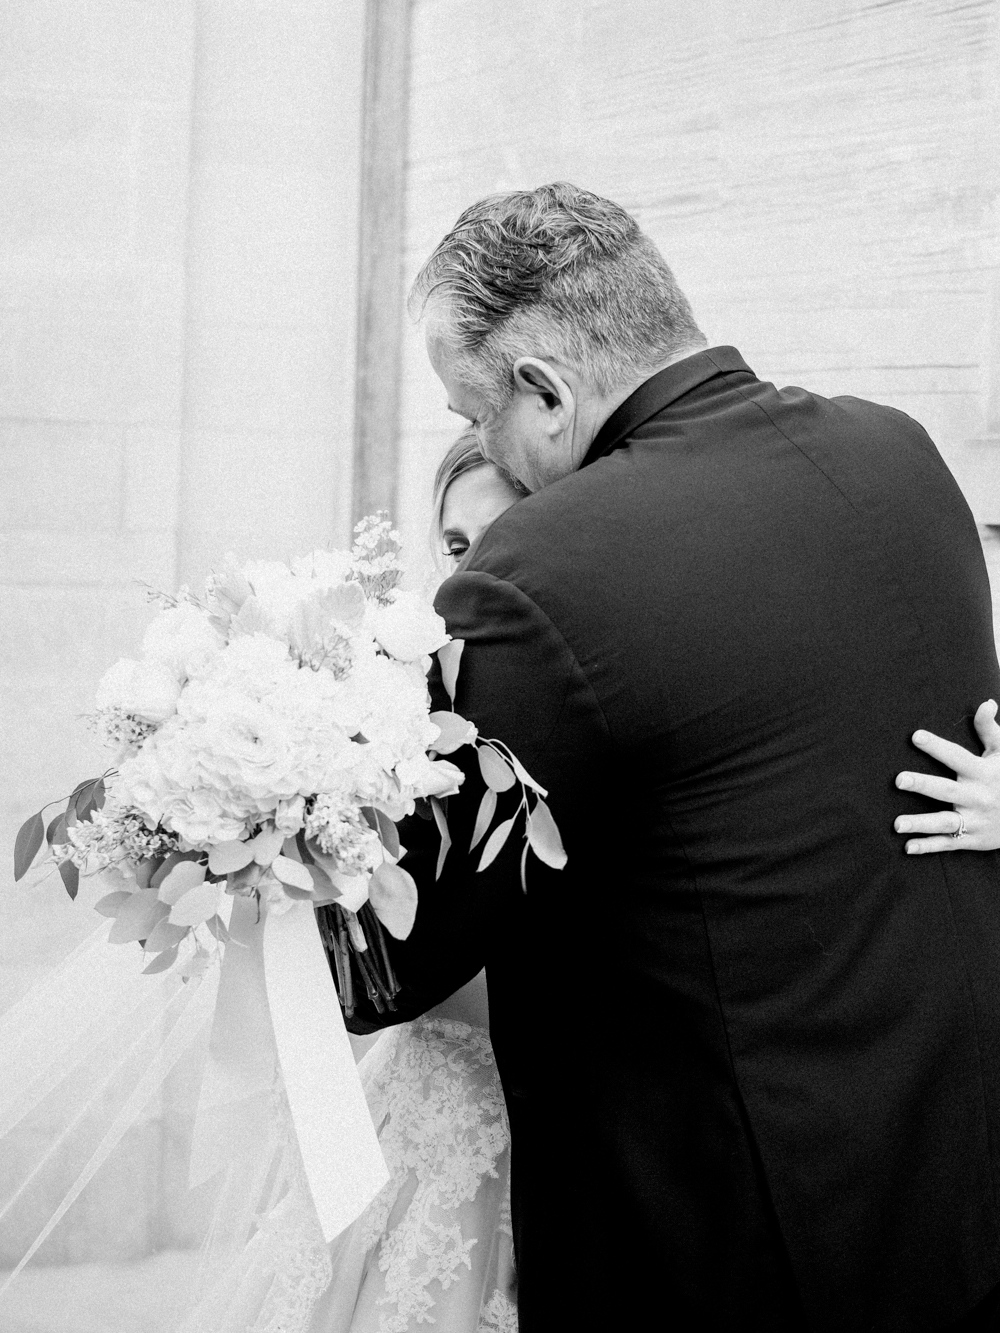 Houston wedding photographer - Christine Gosch - Houston film photographer - greek wedding in Houston - Annunciation Greek Orthodox church in Houston, Texas - Houston wedding planner -62.jpg